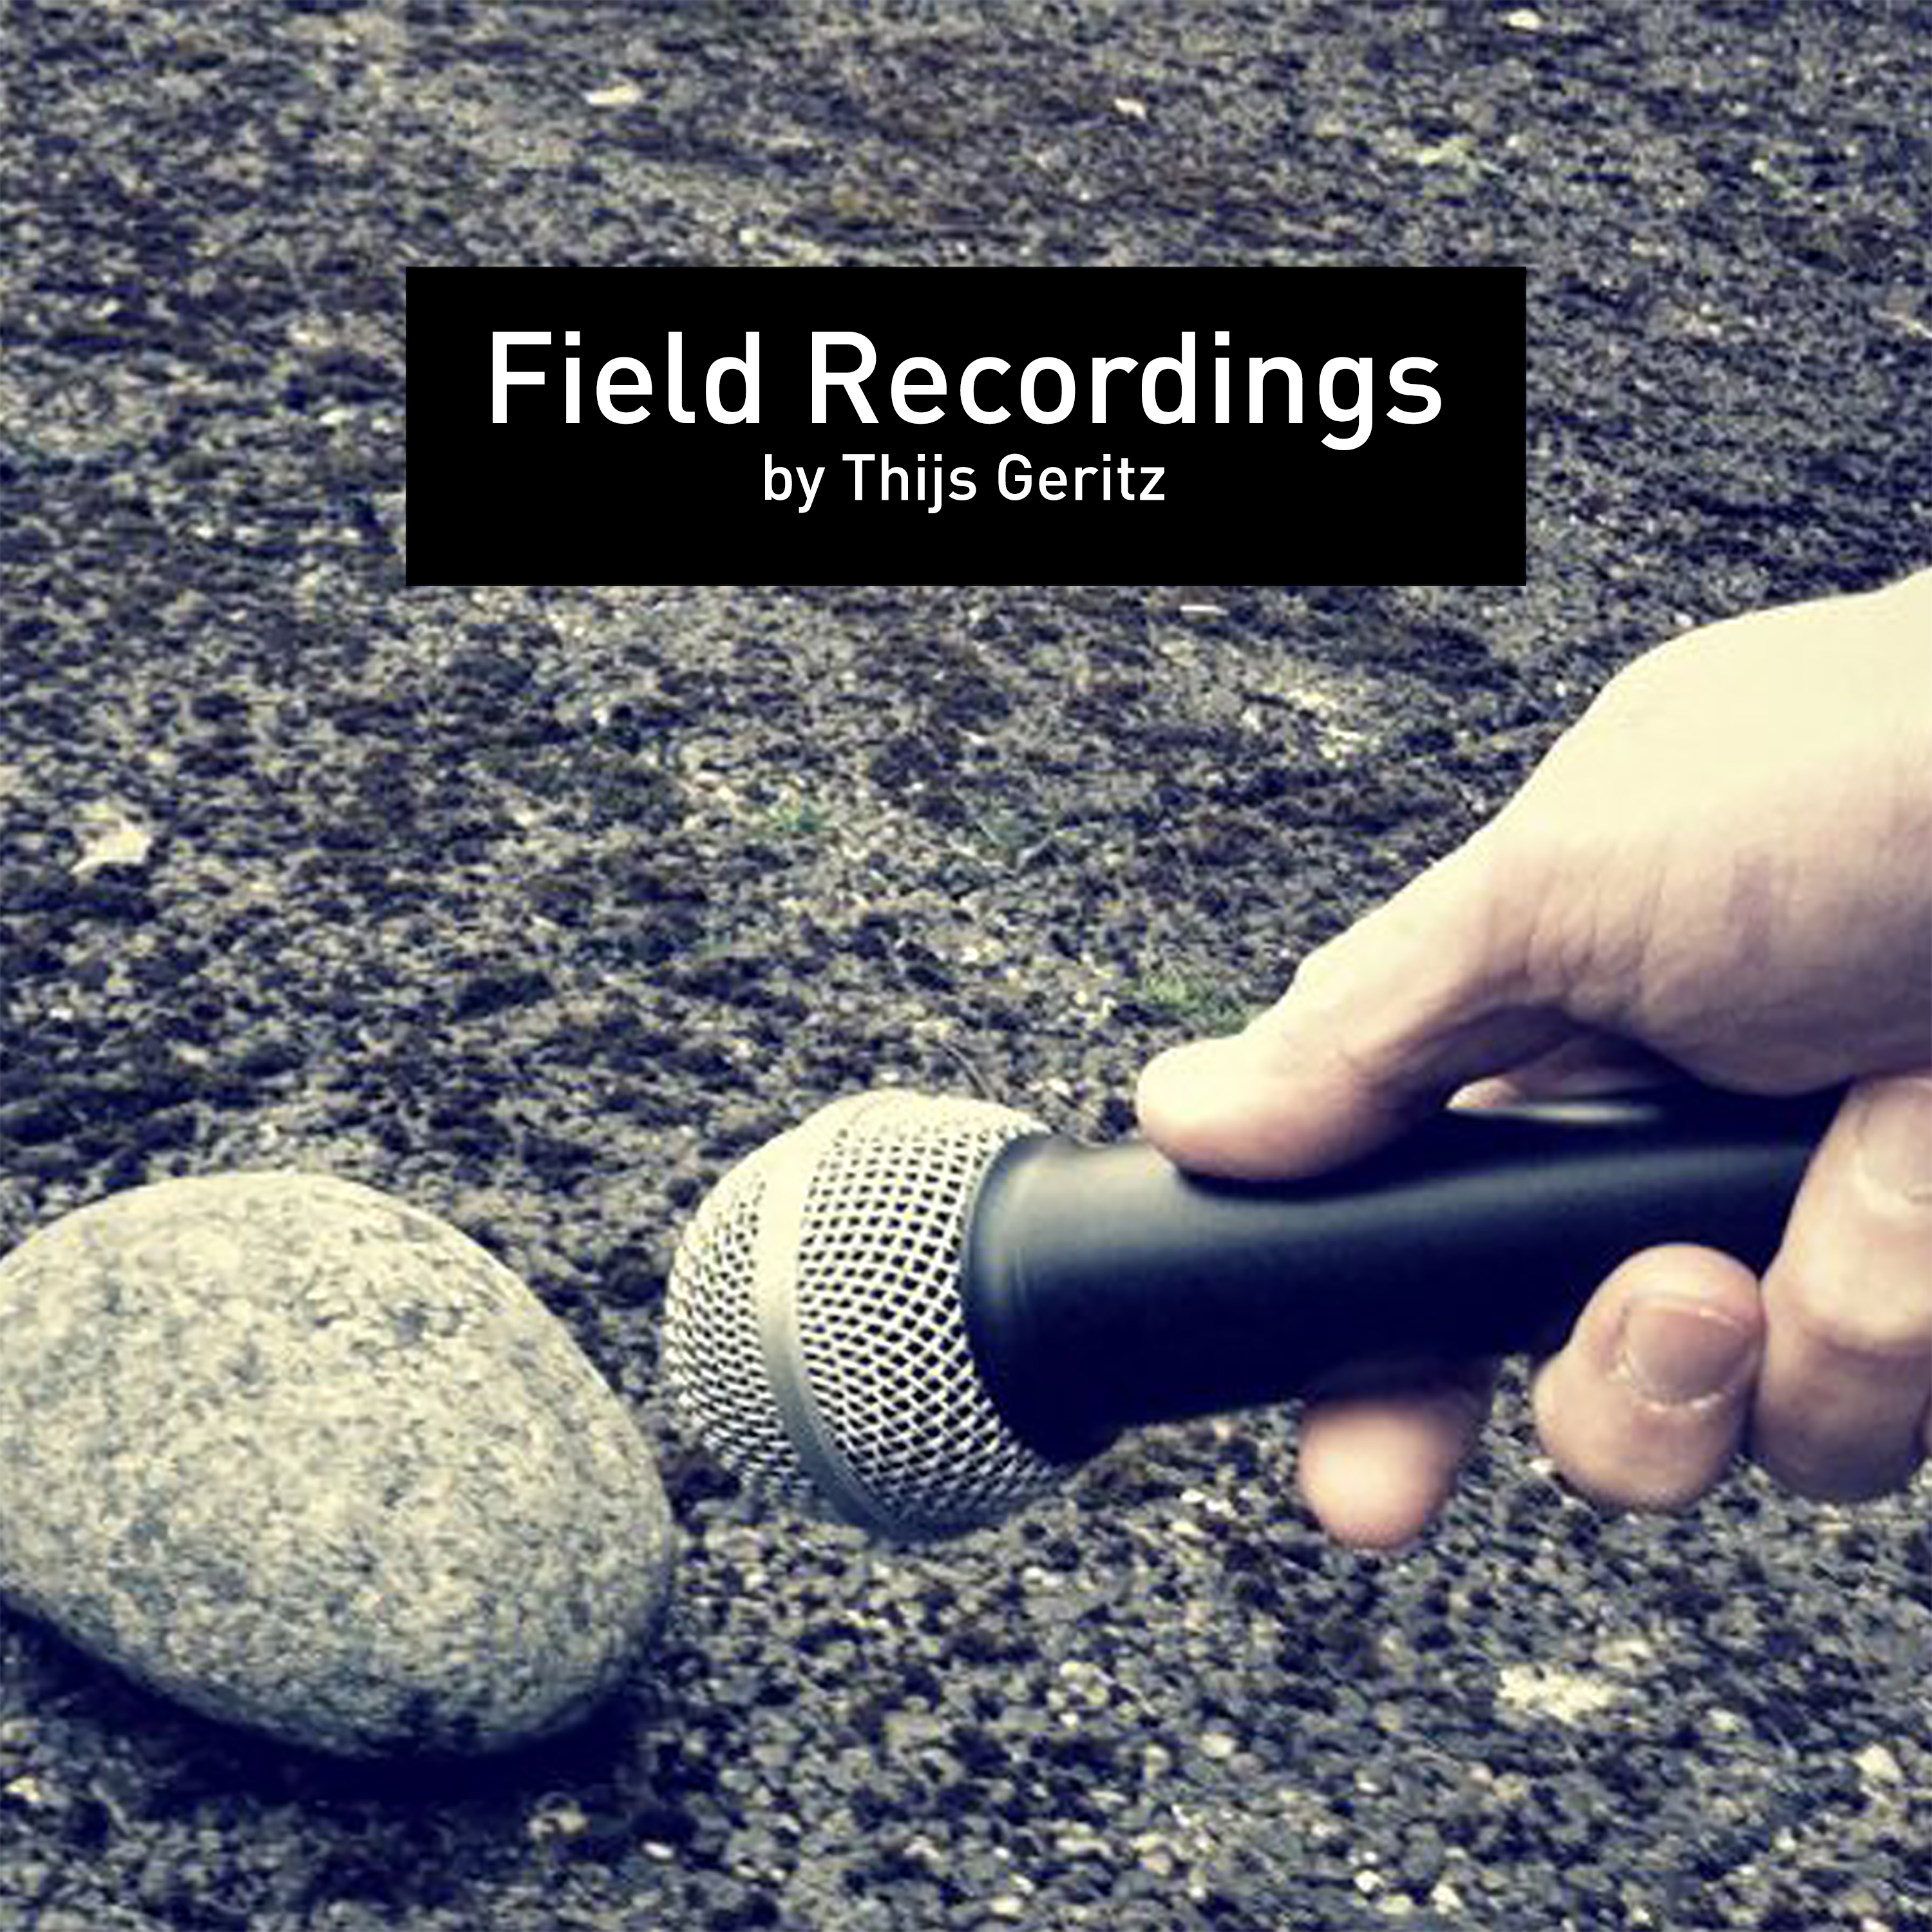 Field Recordings by Thijs Geritz